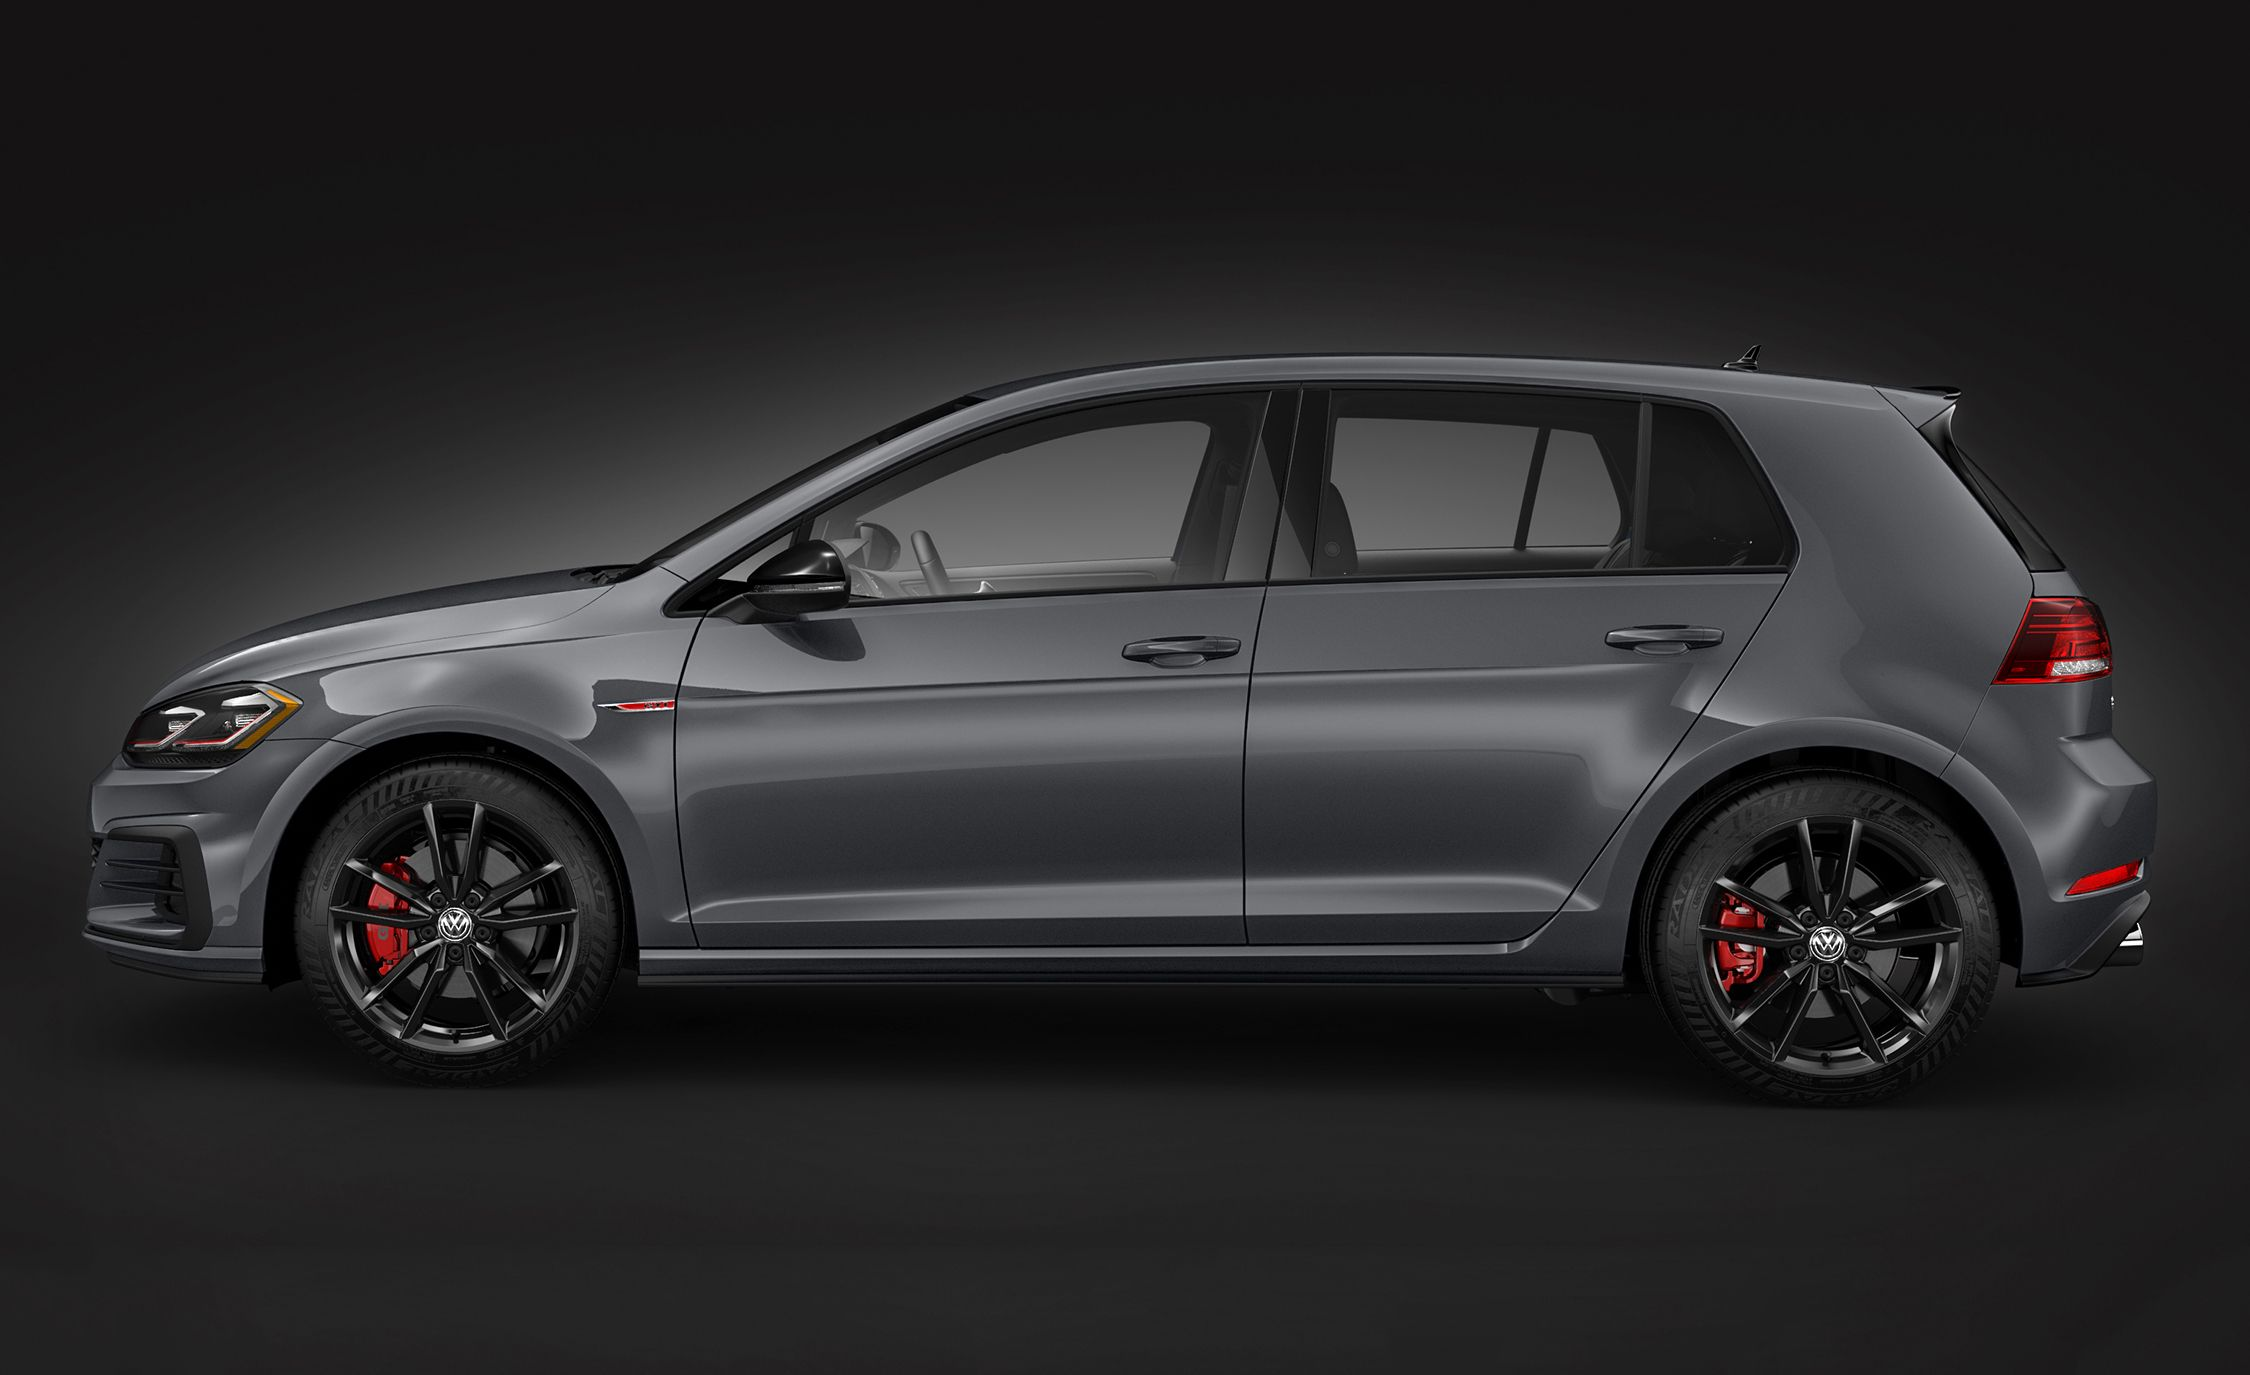 The 2019 Volkswagen Golf GTI Adds More Power and a Rabbit Edition